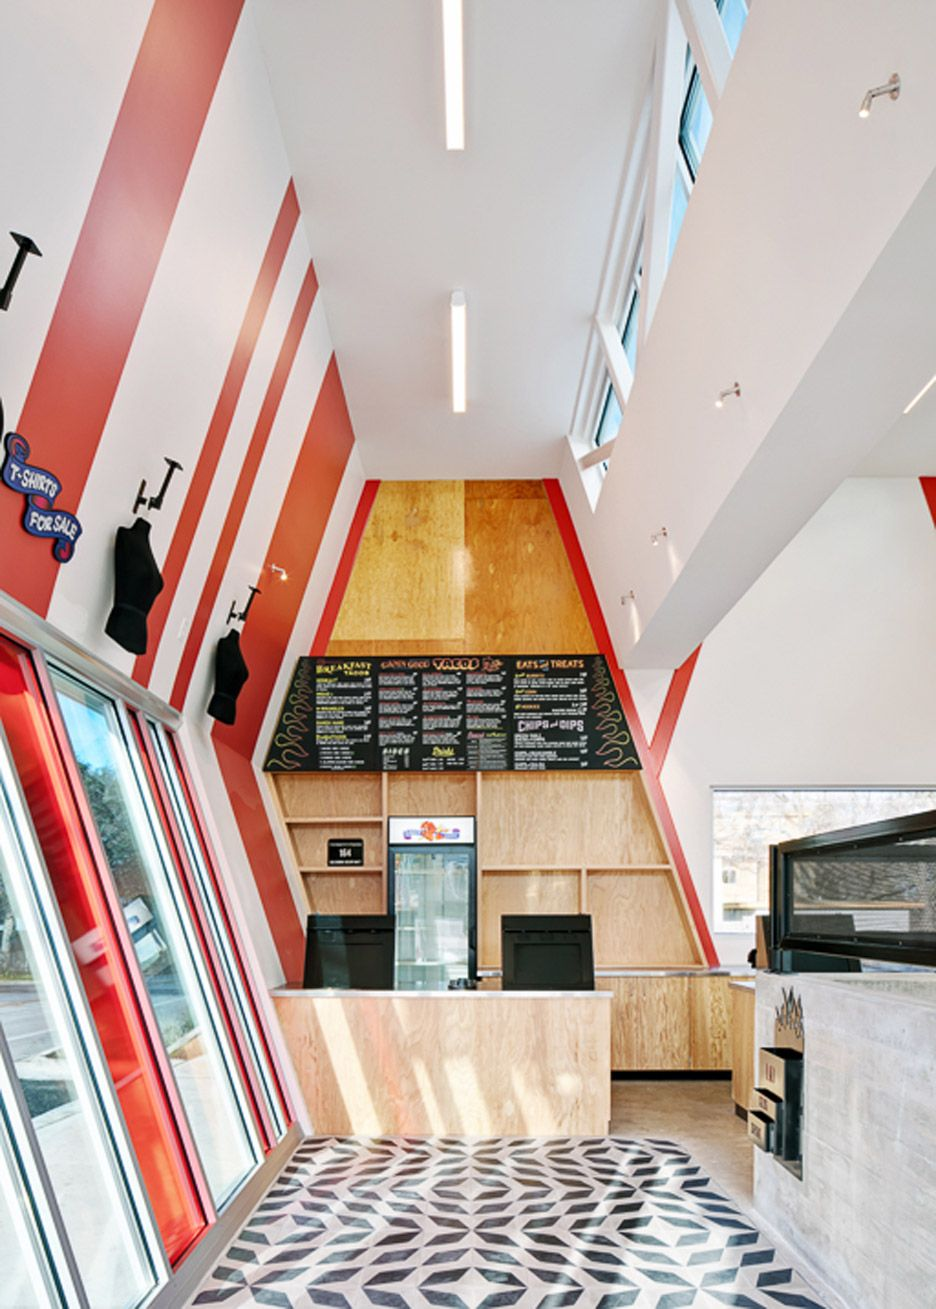 1950's drivein inspired Torchy's Taco Shop in Austin